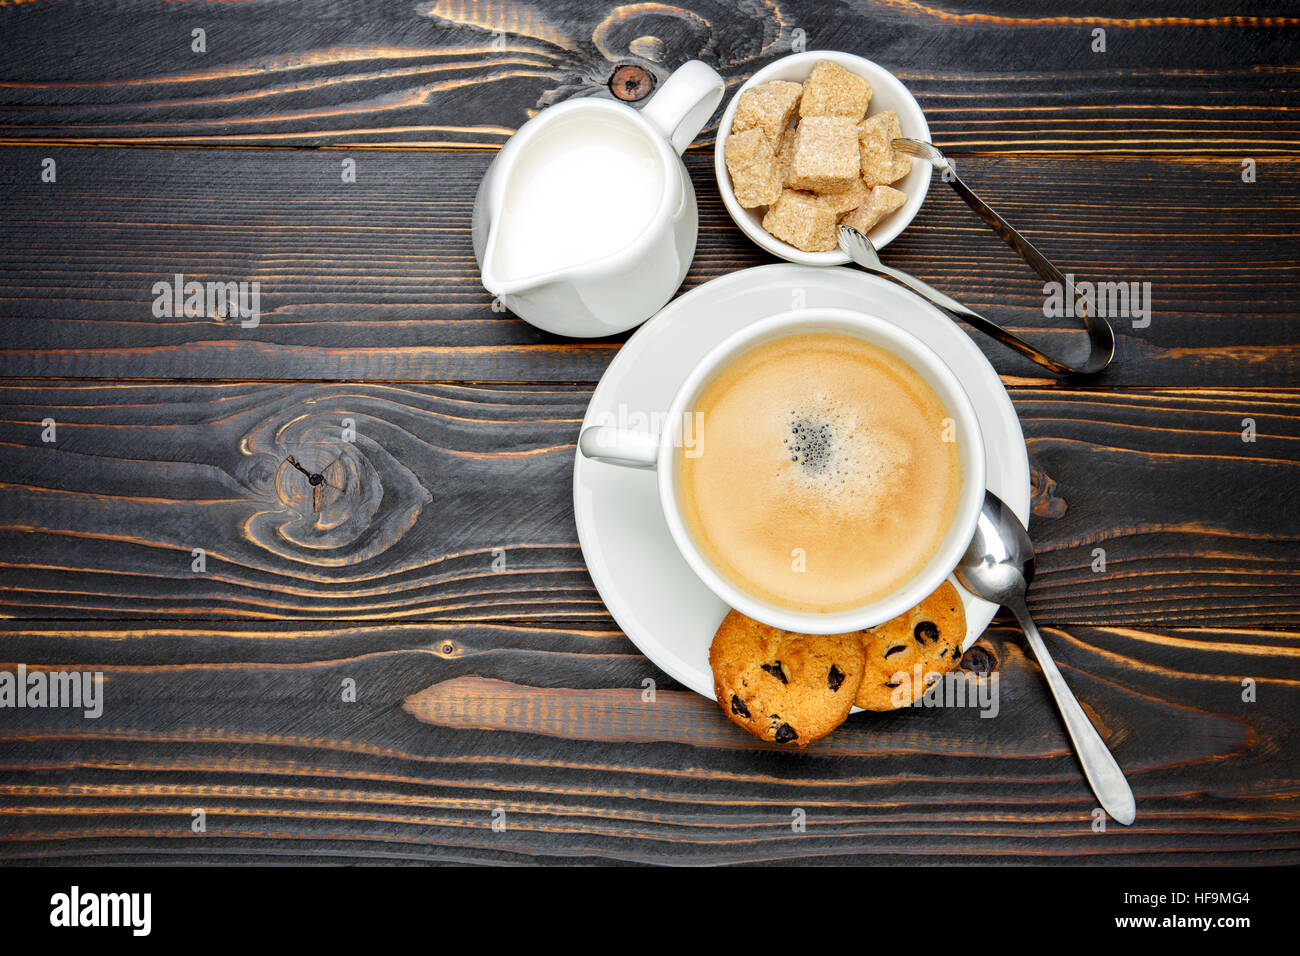 fresh cookies and coffee on wooden background - Stock Image